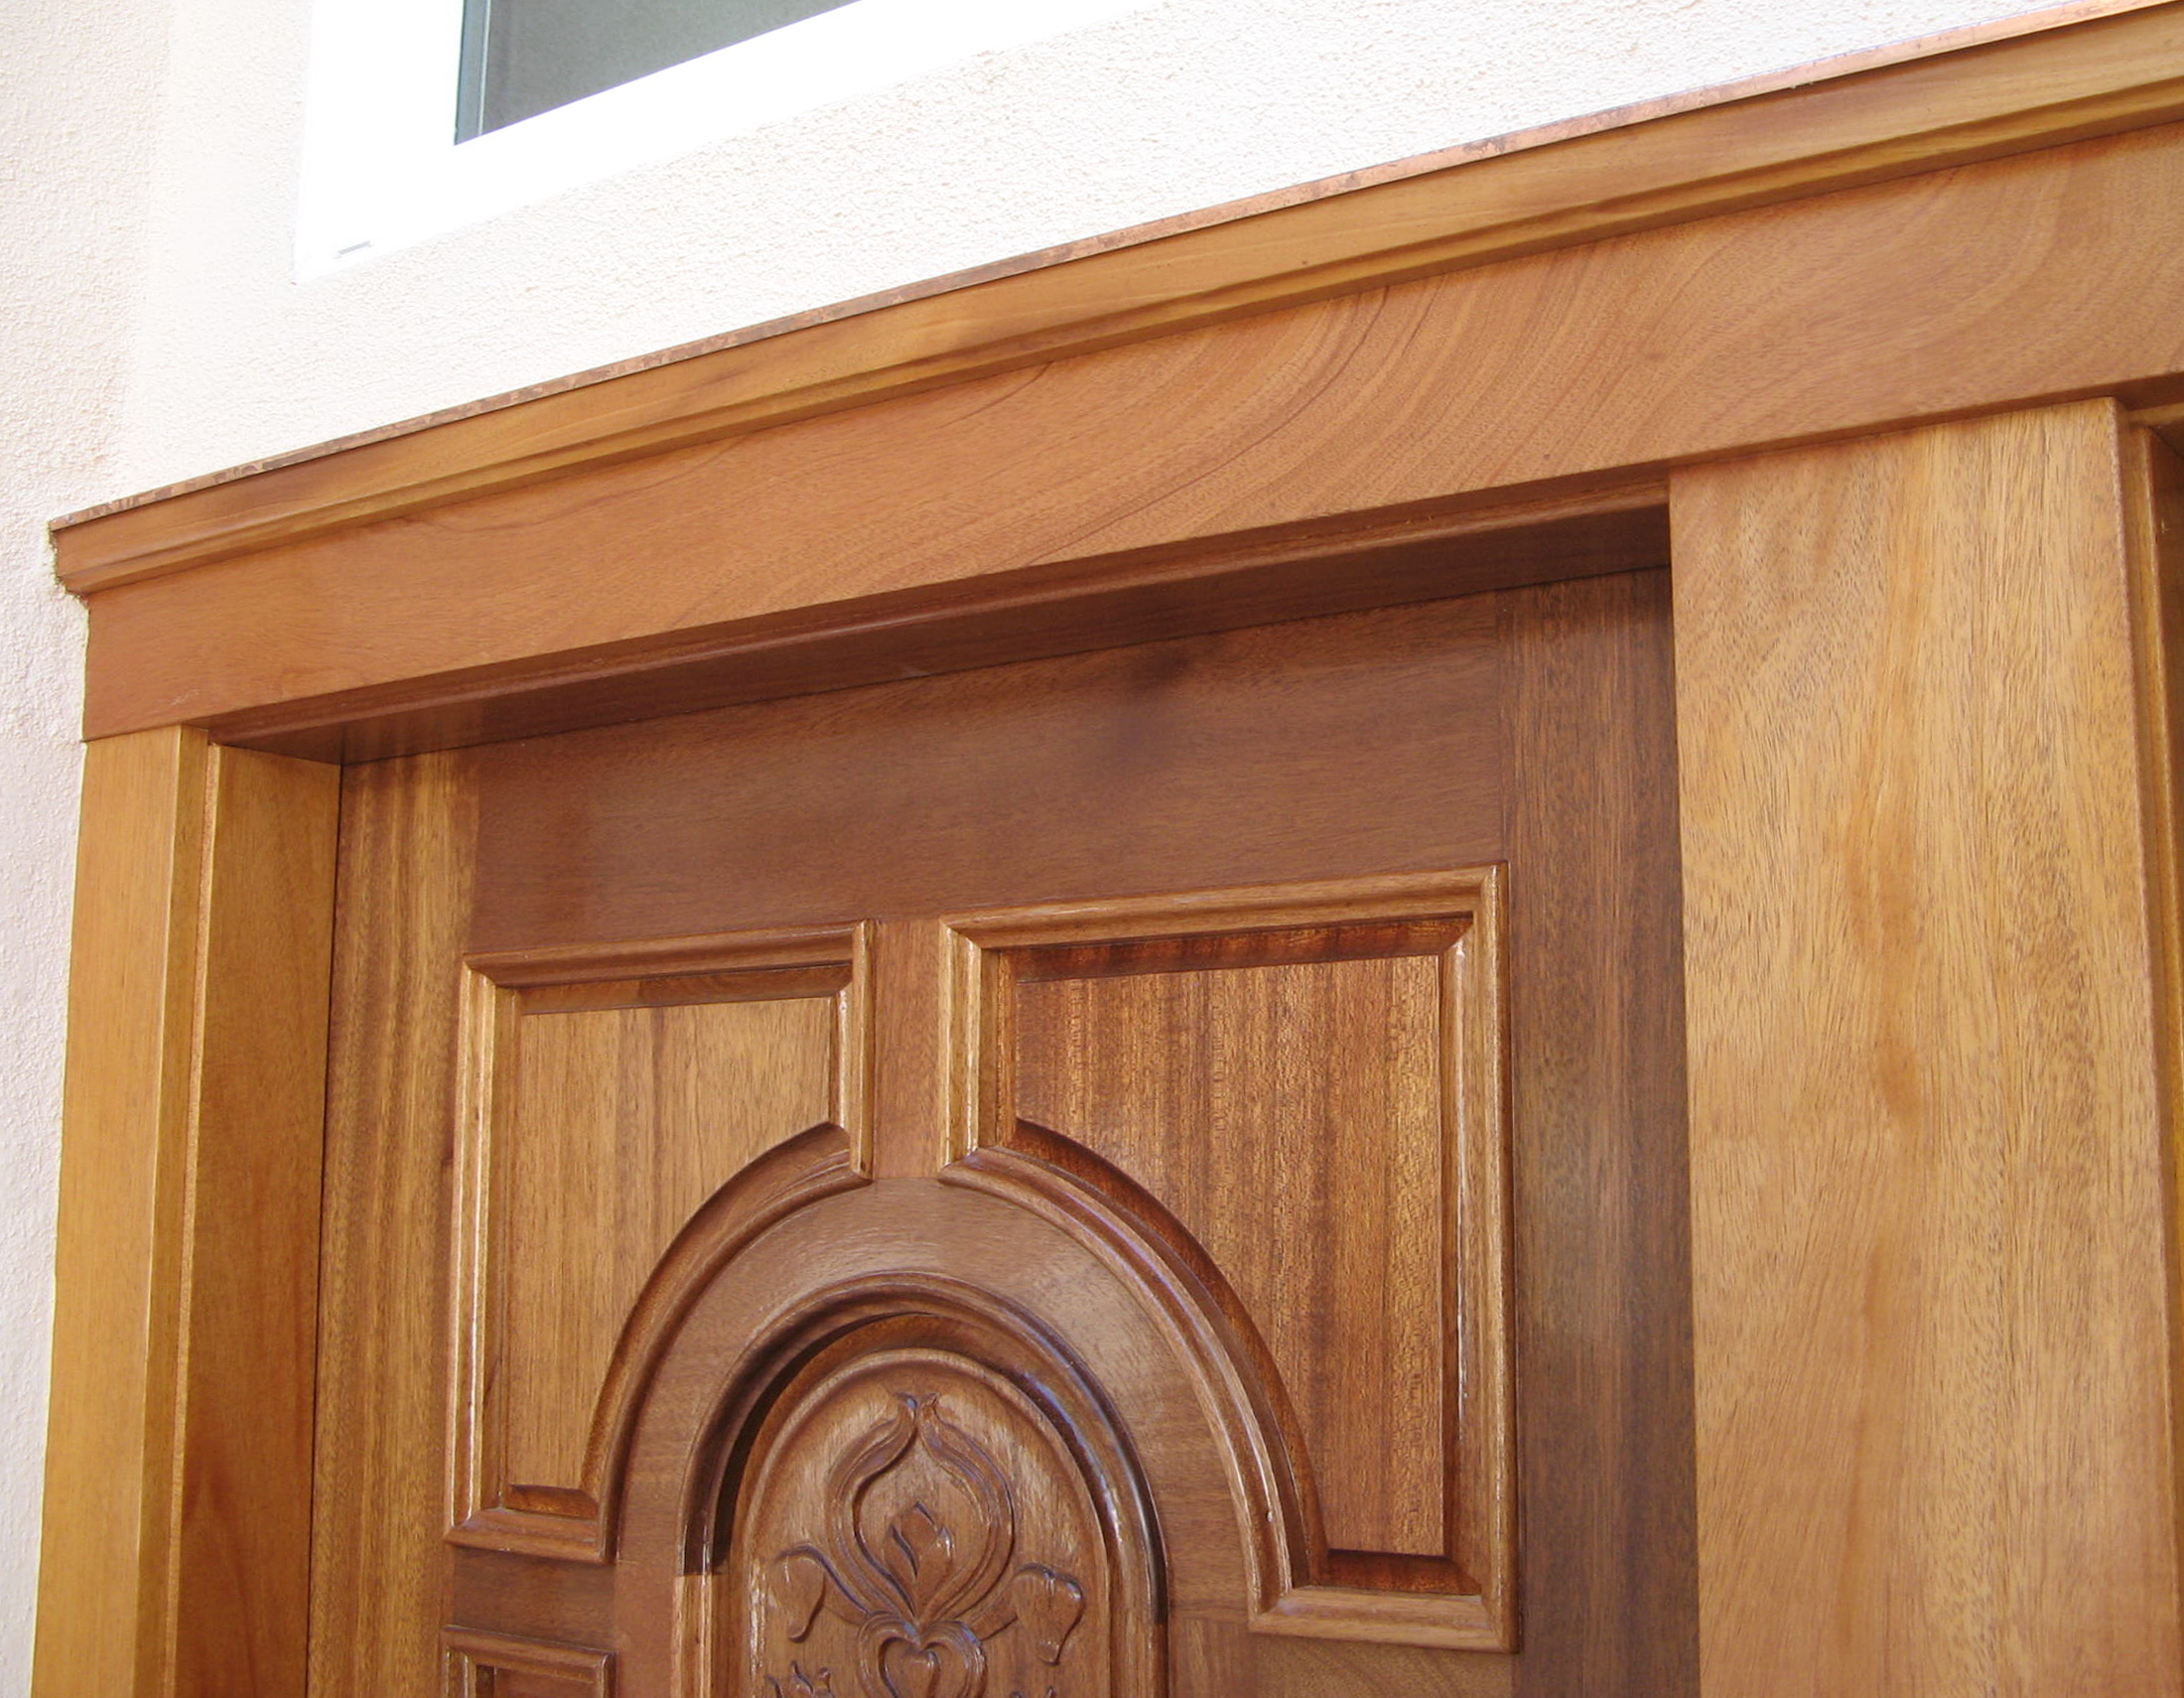 Entry door and trim detail